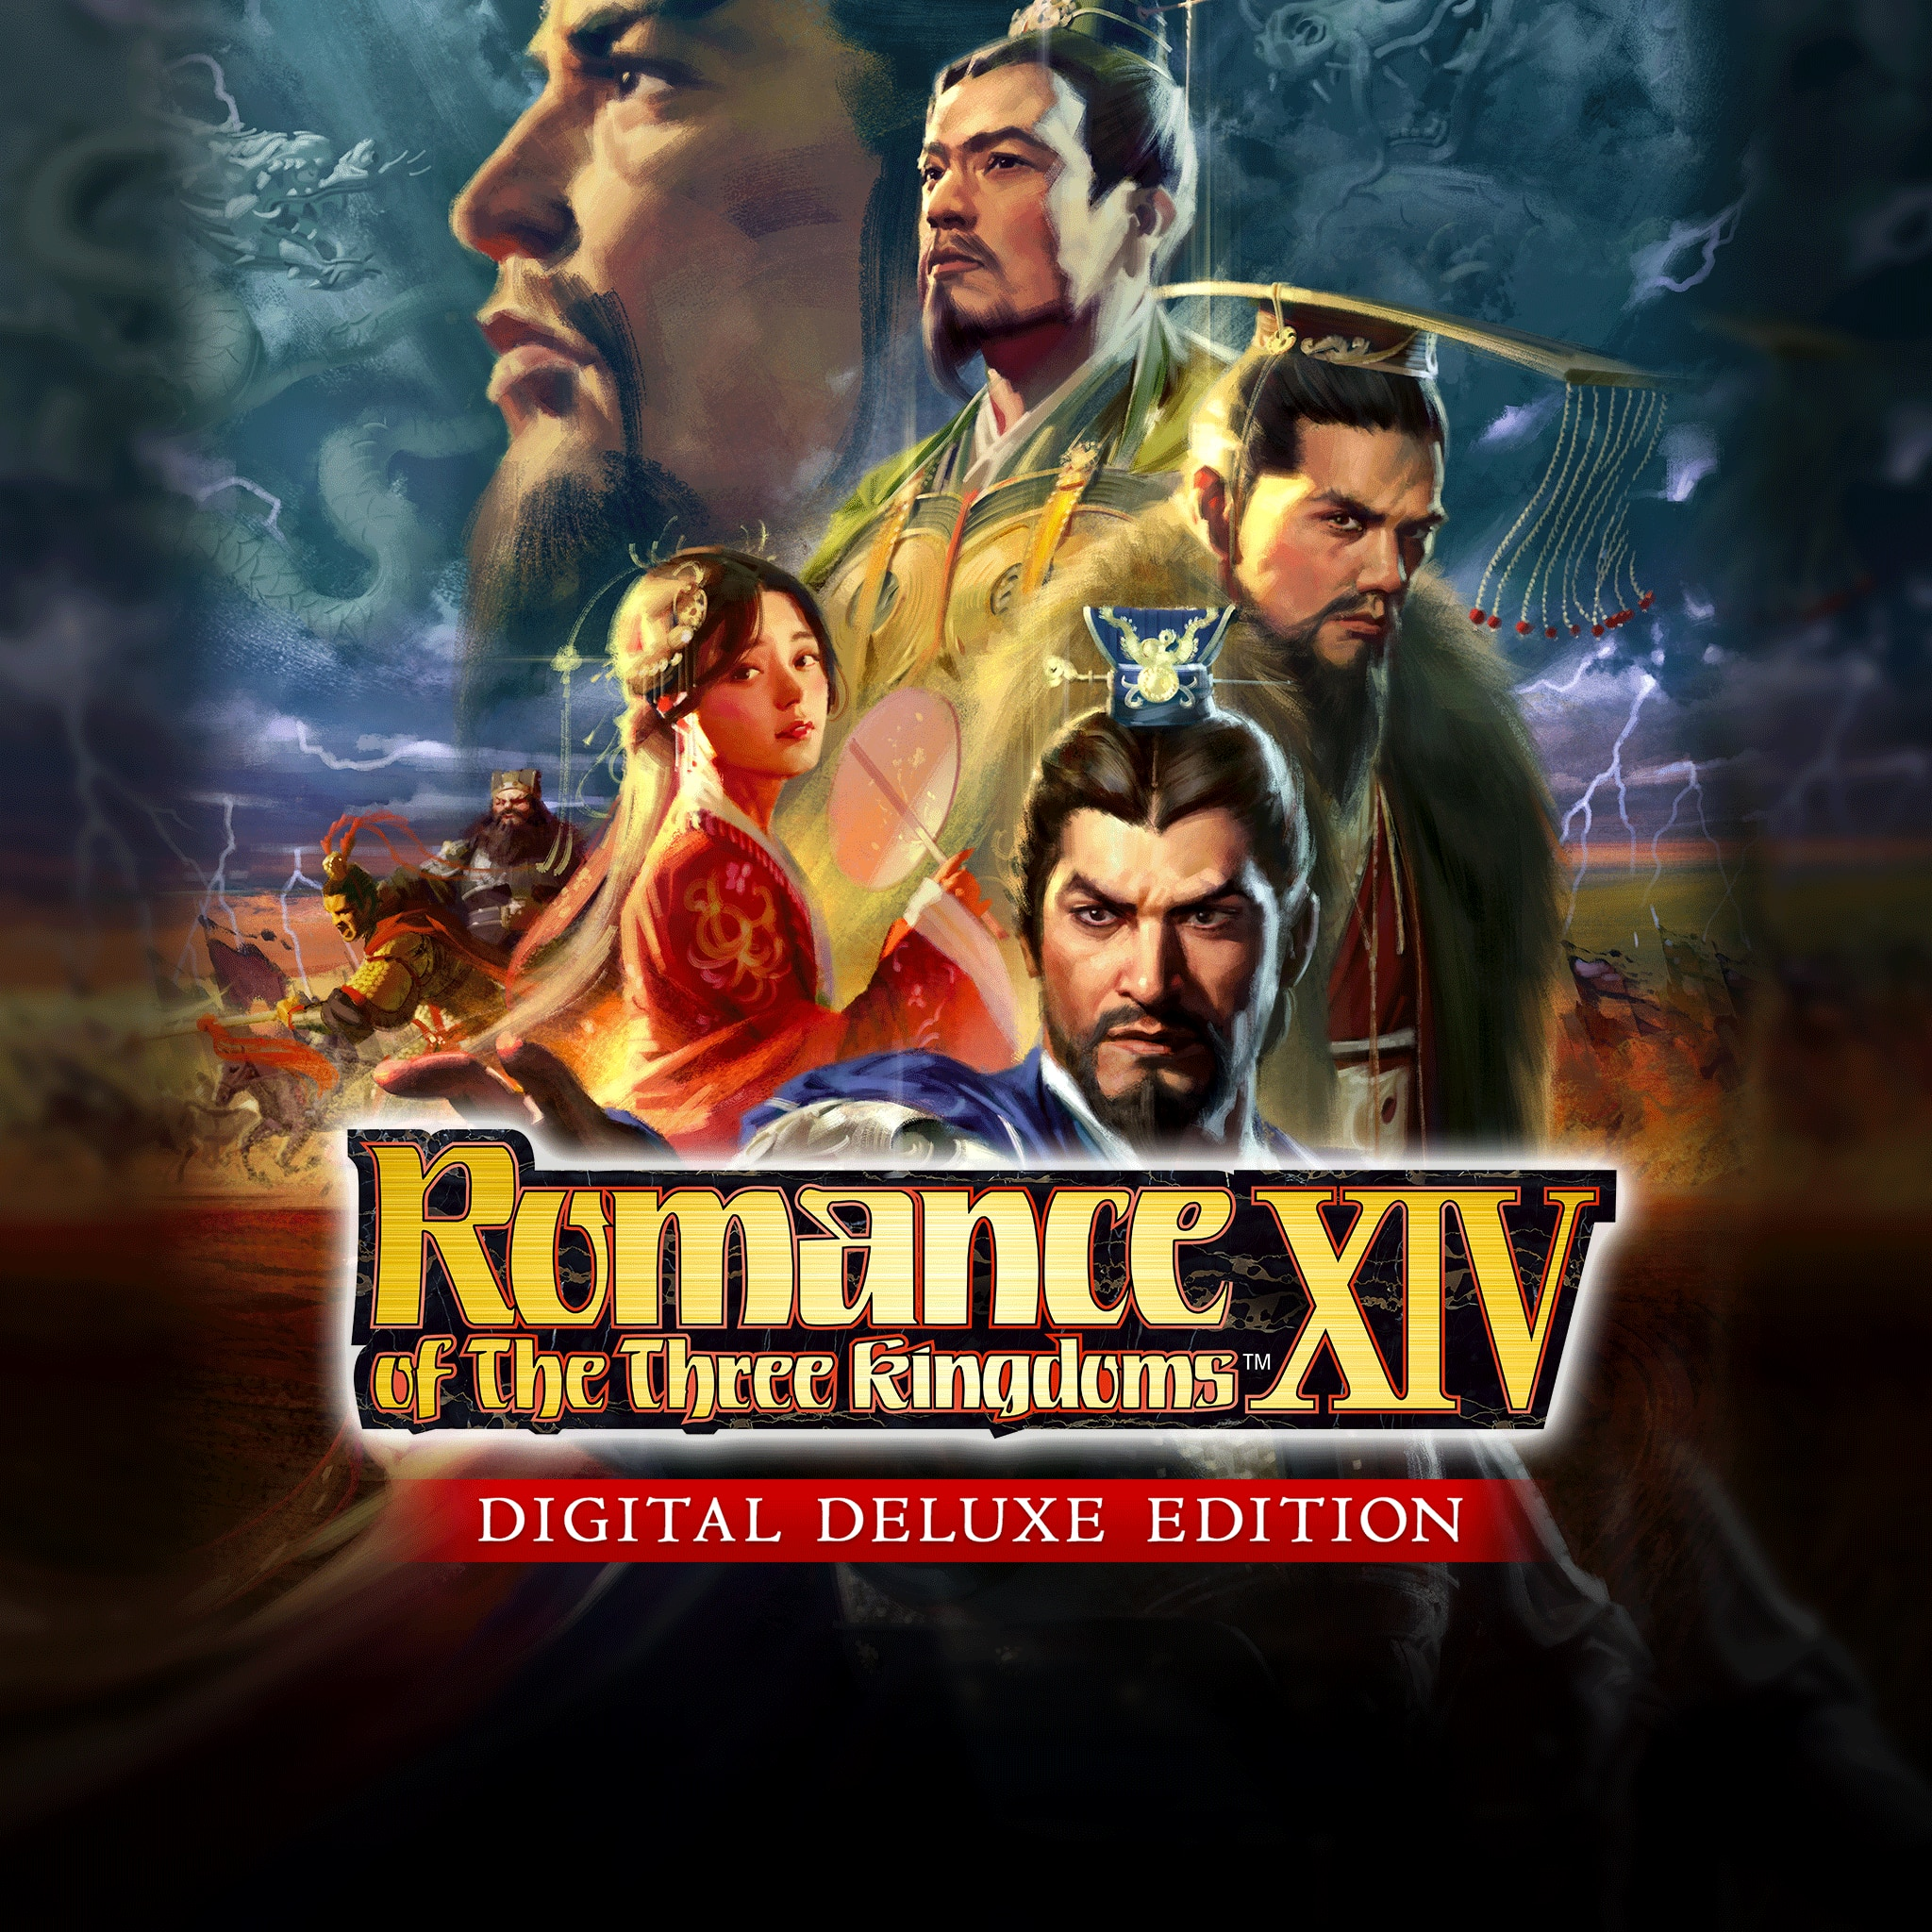 ROMANCE OF THE THREE KINGDOMS XIV Digital Deluxe Edition